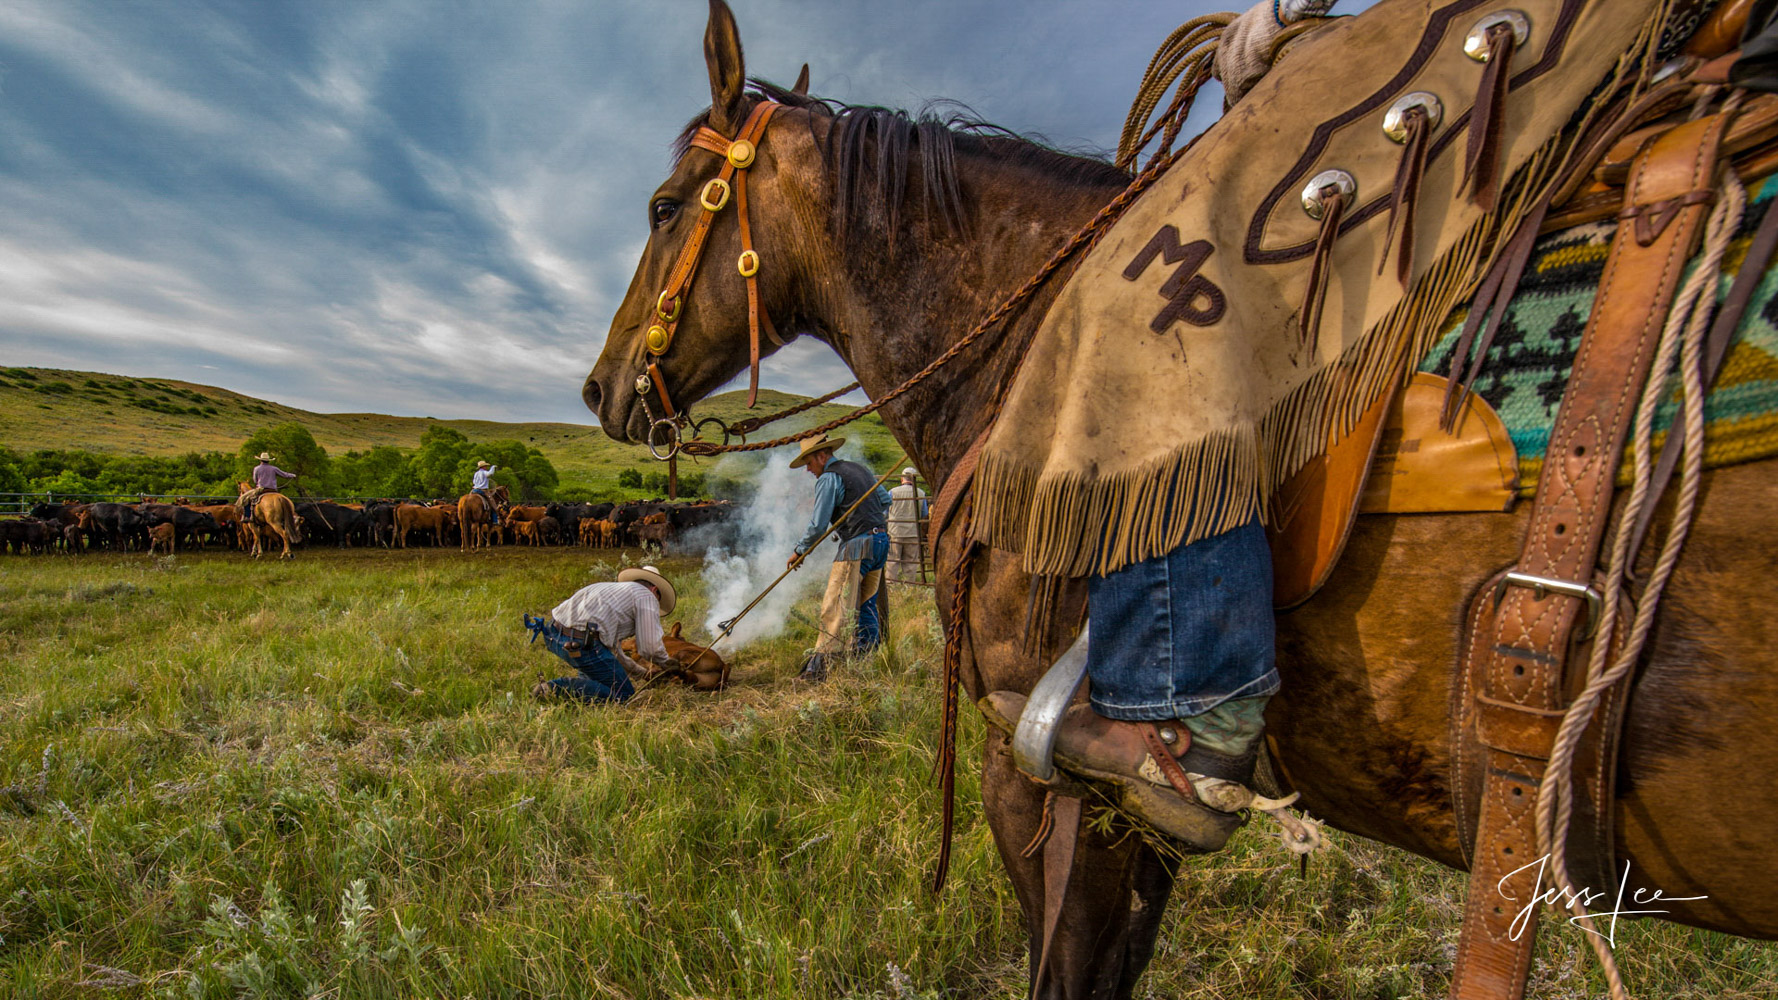 Branding Time Fine Art Limited Edition Cowboy Photography, Horses and life in the West. Cowboy photography at a branding is a...